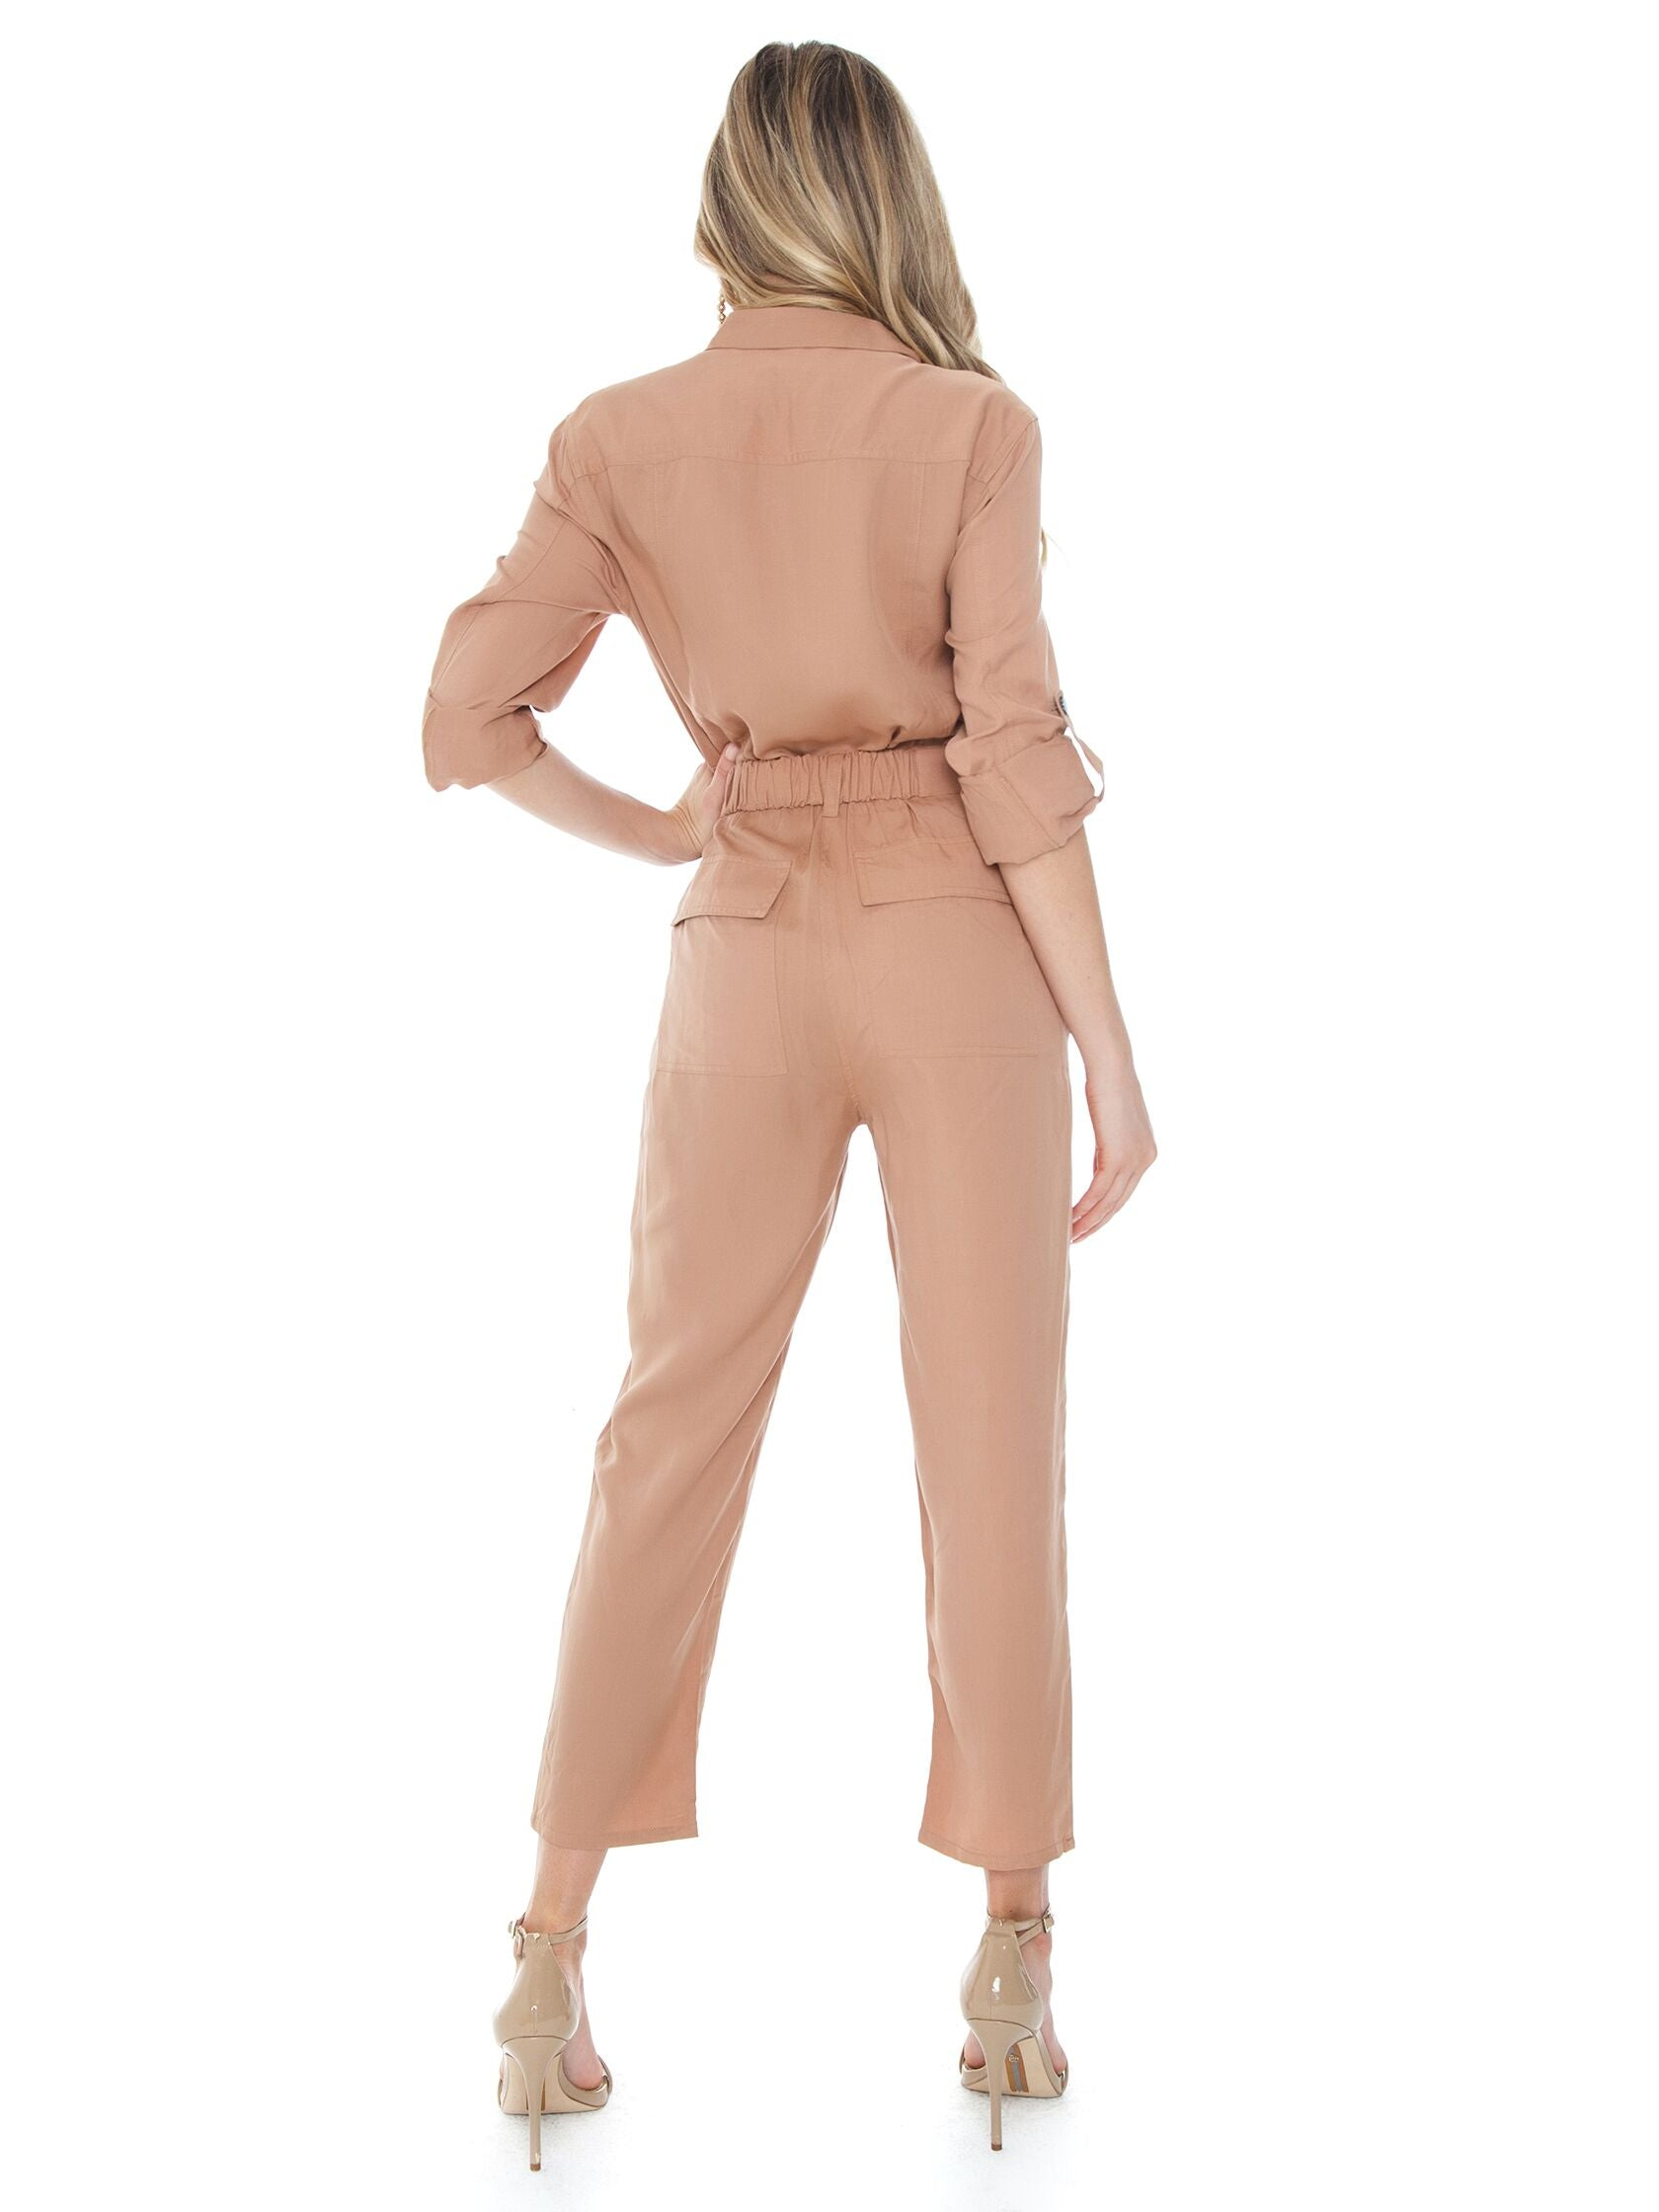 Women wearing a jumpsuit rental from BARDOT called Buckle Up Jumpsuit